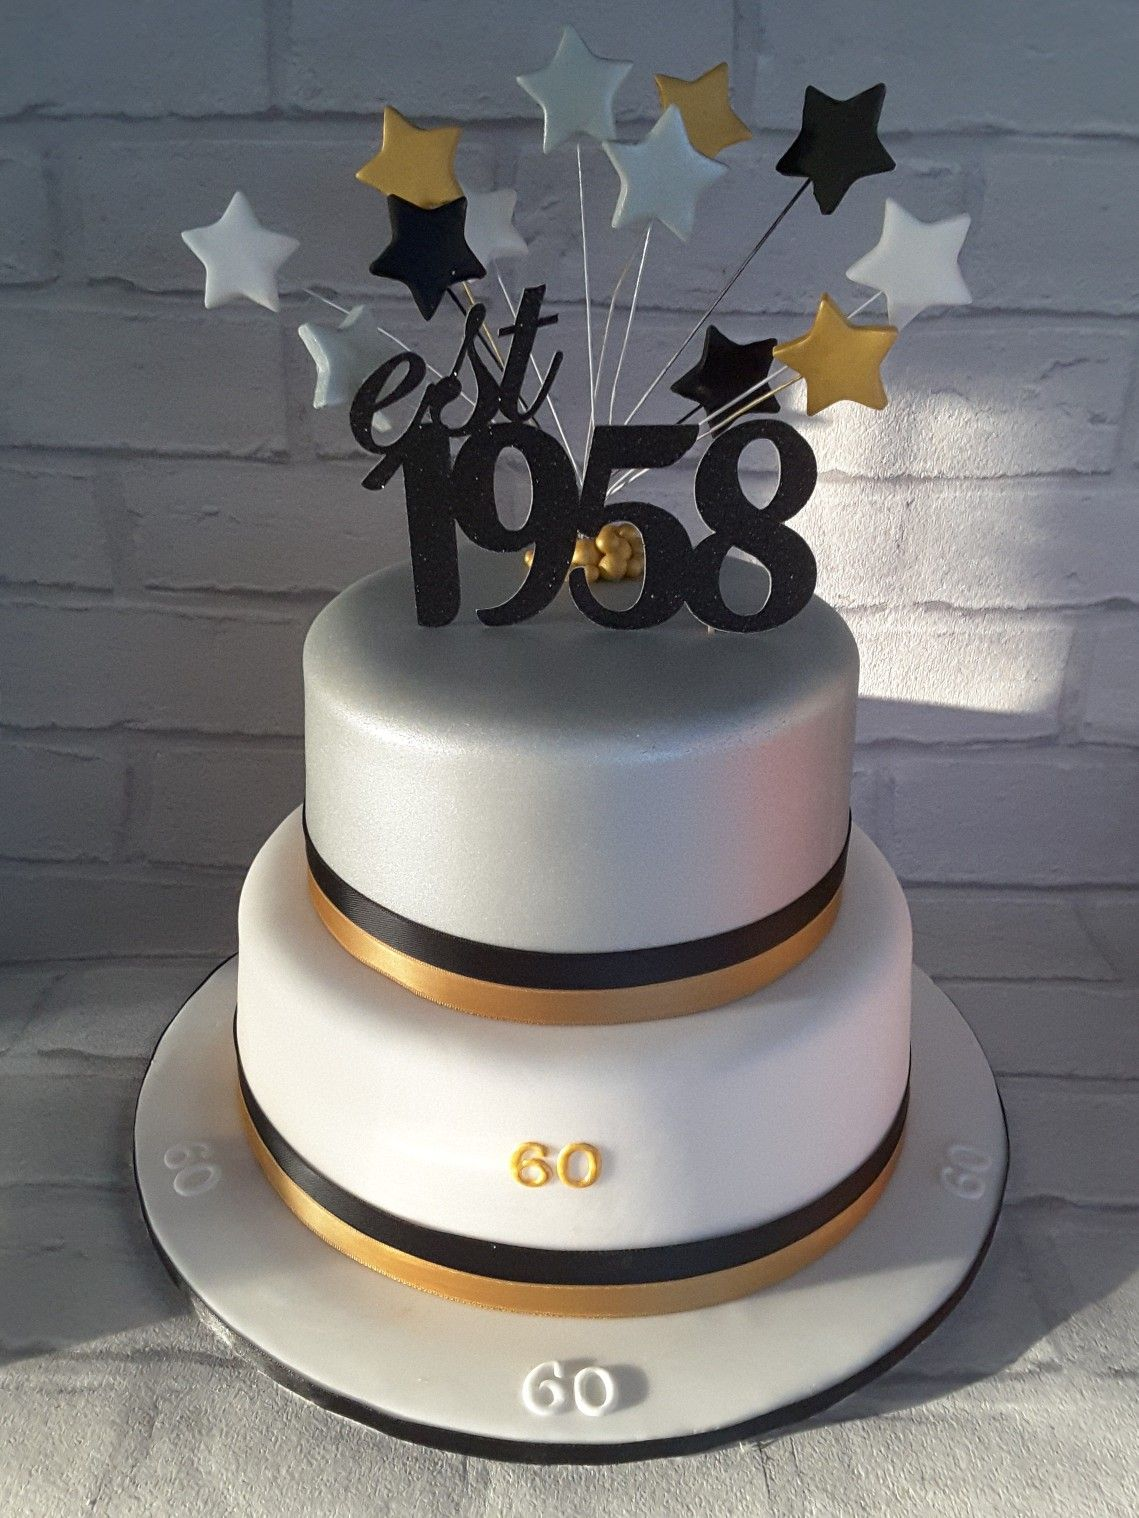 60th Birthday Cake Gold Silver And Black With Stars With